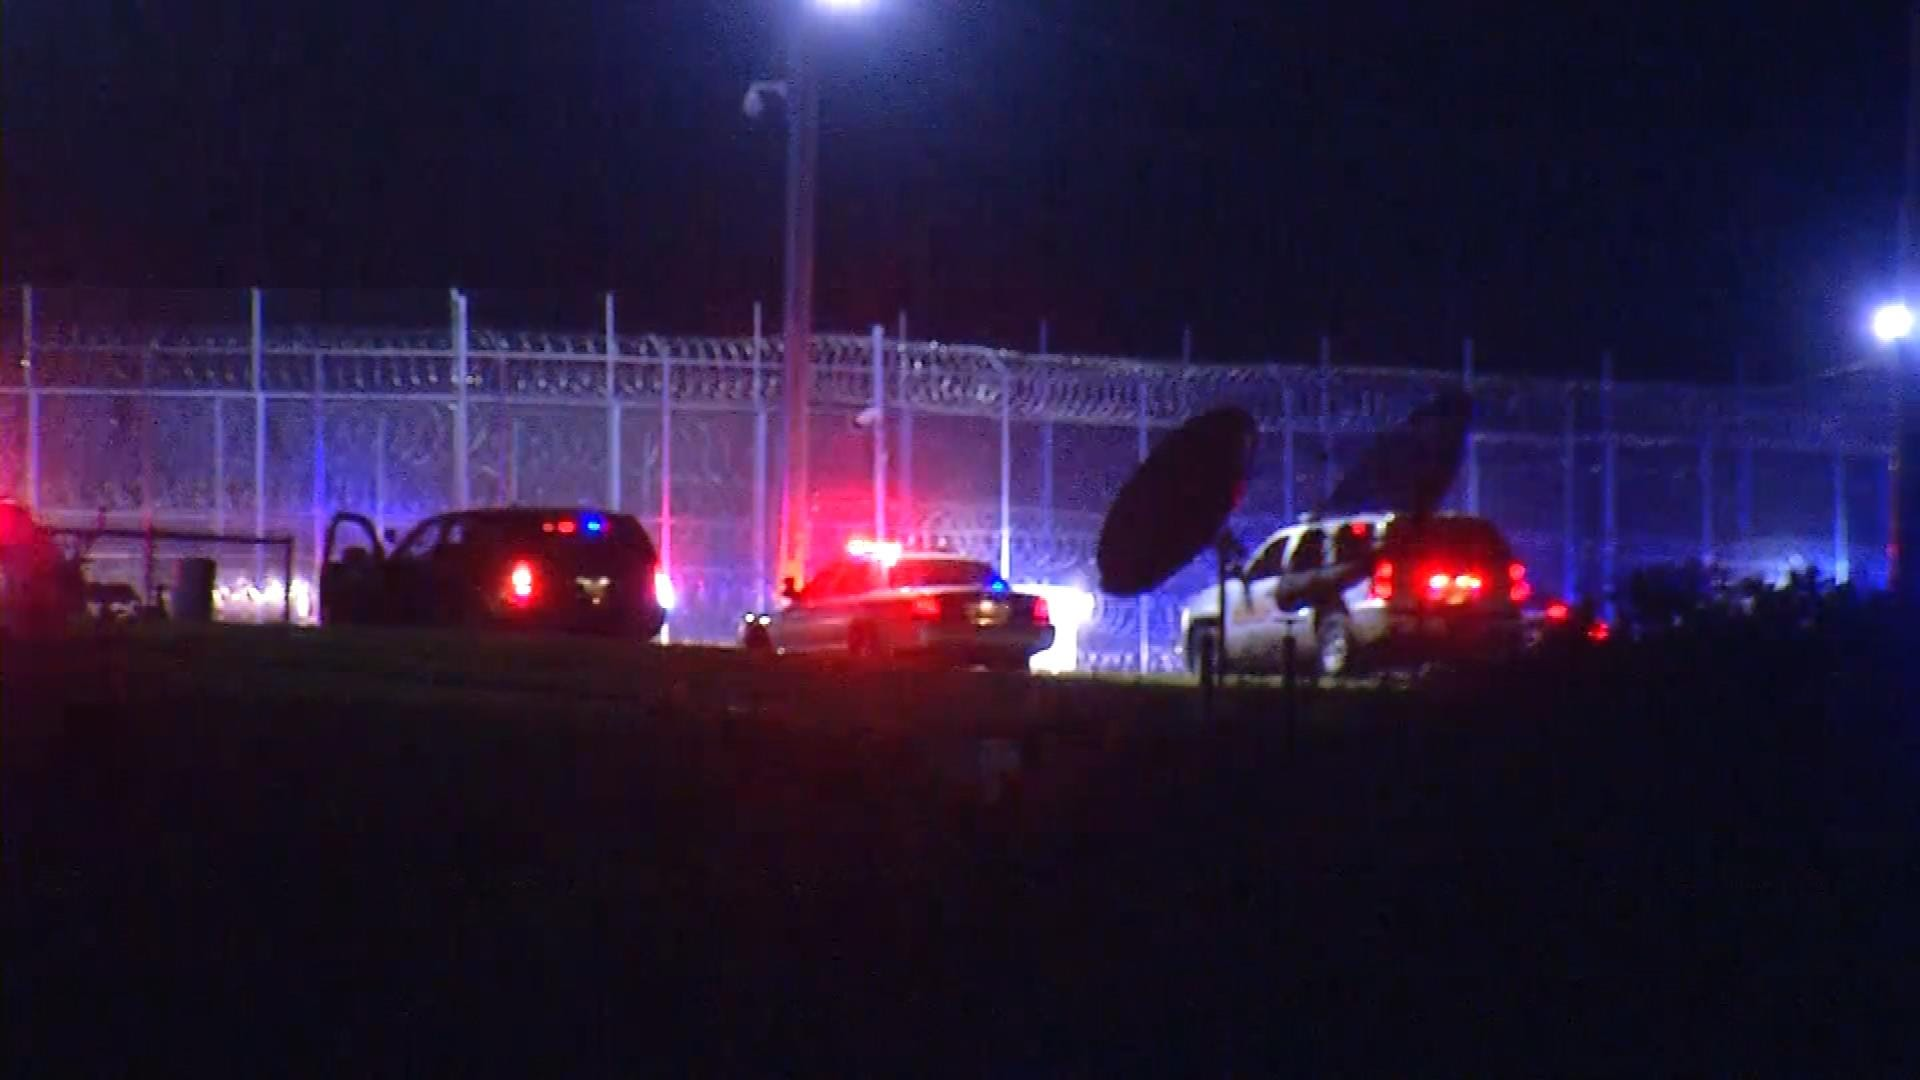 Late Night Prison Riot Breaks Out In Hinton, Under Control By Monday Morning